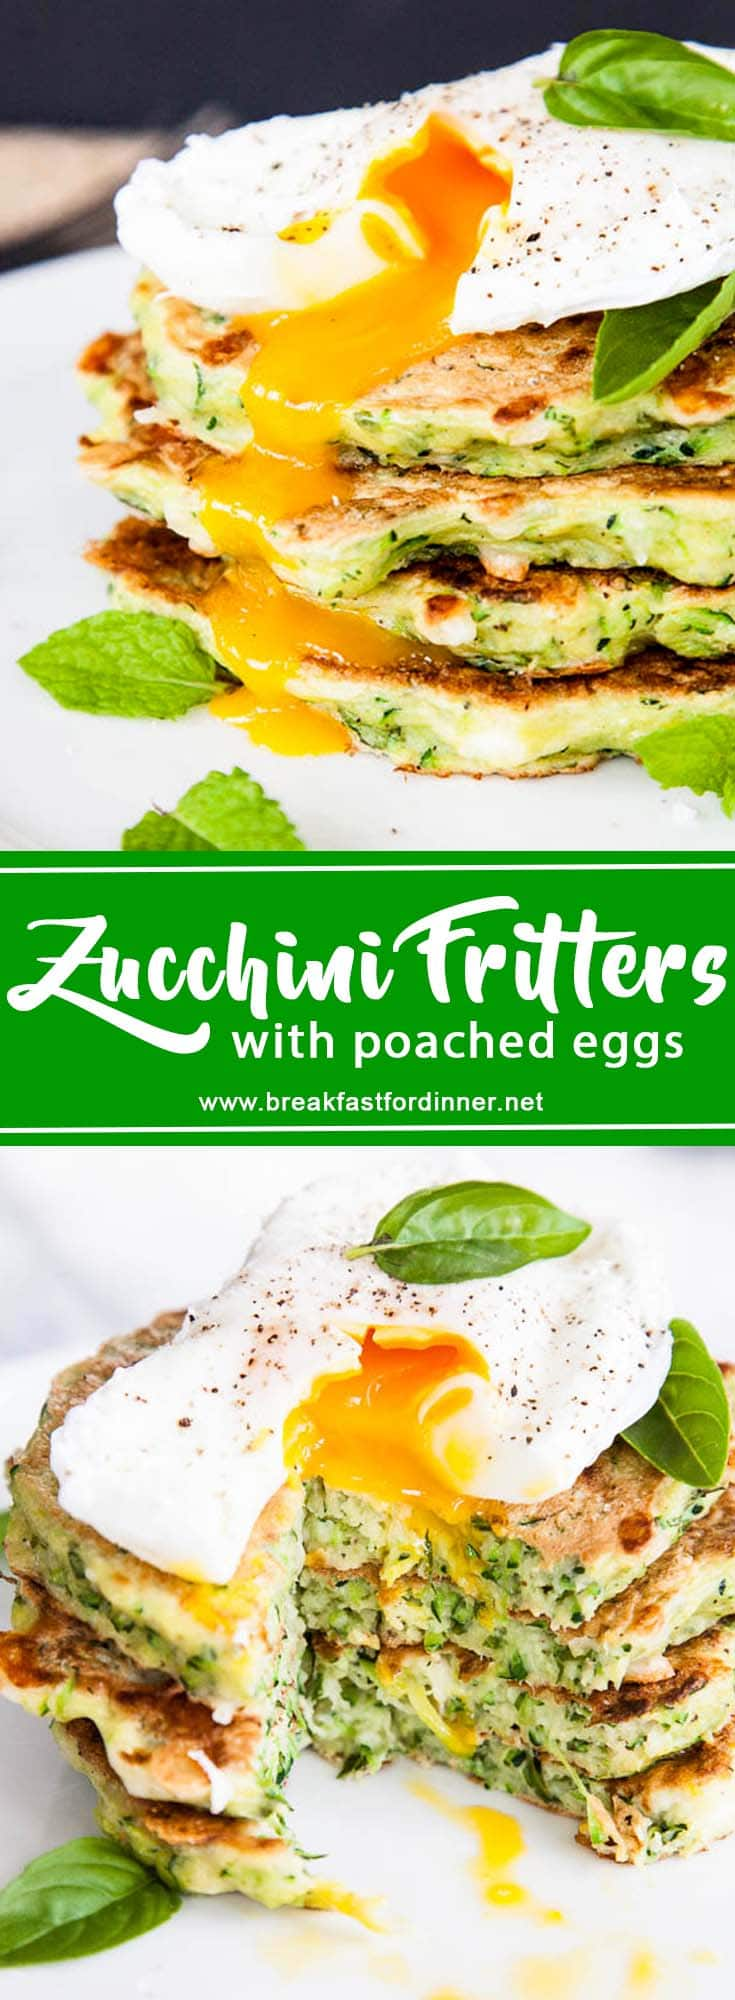 Zucchini Fritters with Poached Eggs | breakfast for dinner